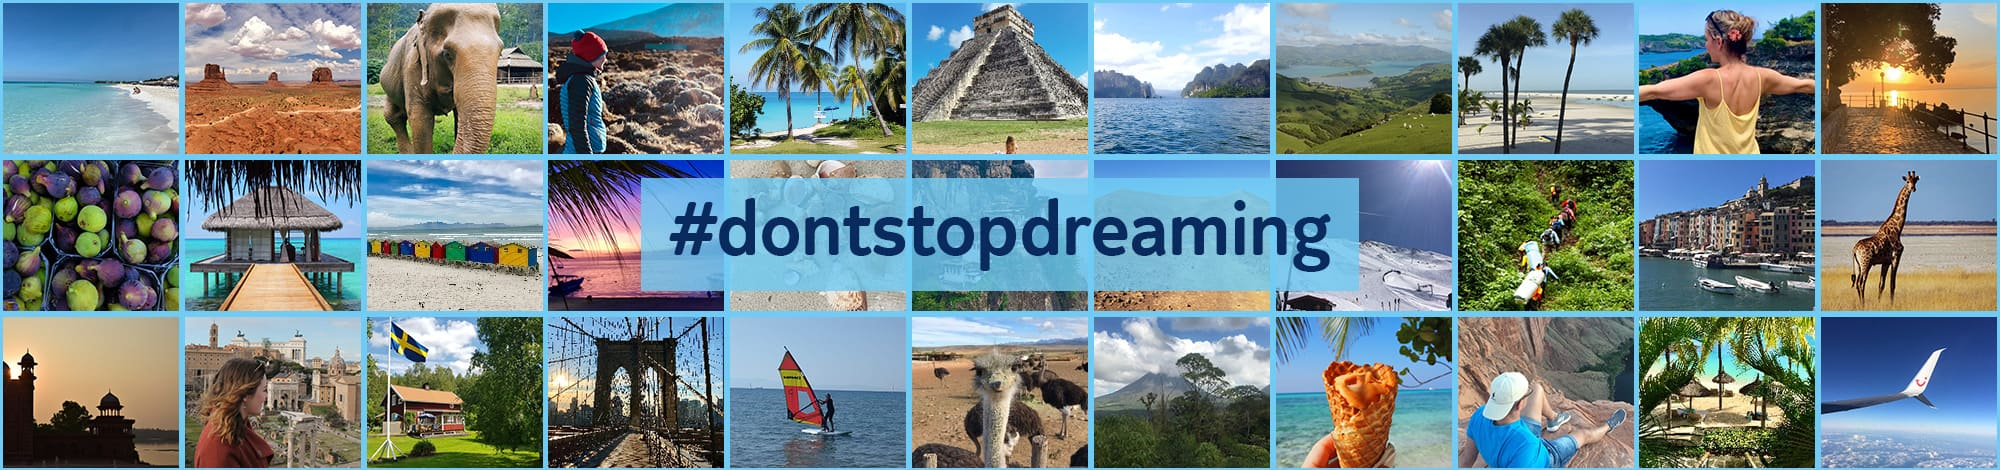 TUI #dontstopdreaming